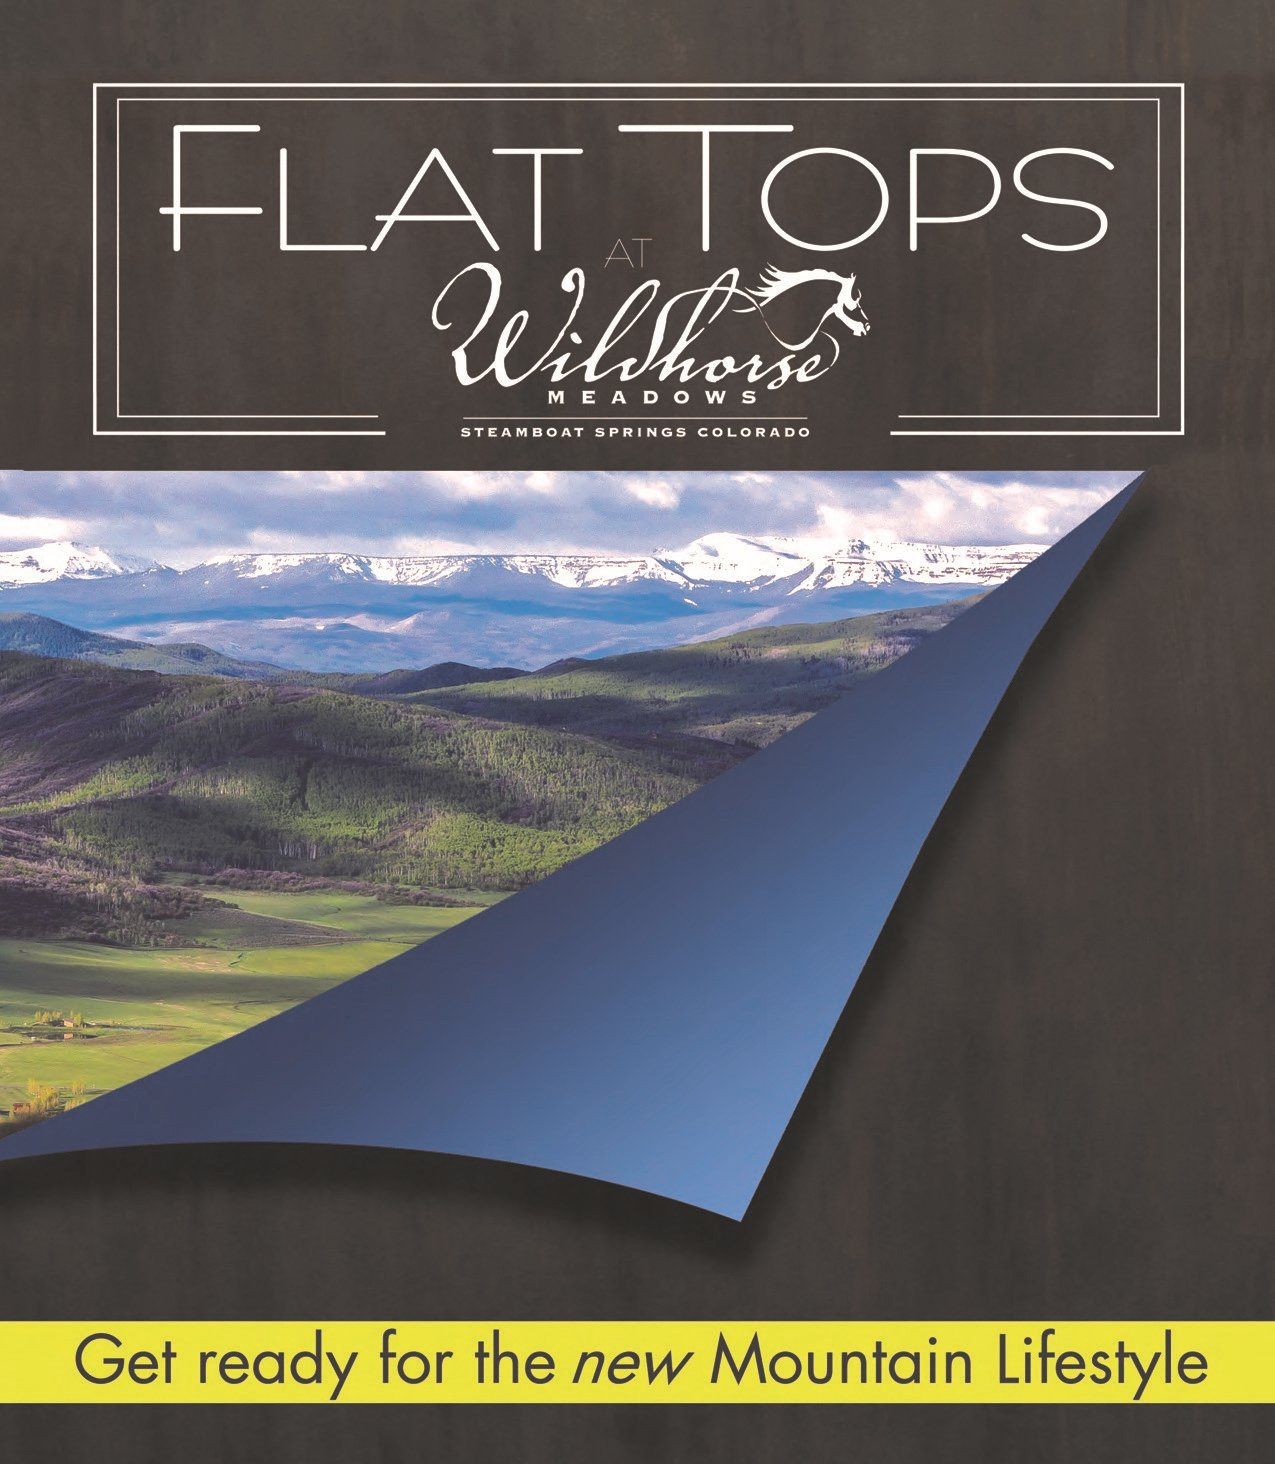 flat-tops-at-wildhorse-meadows_page_1